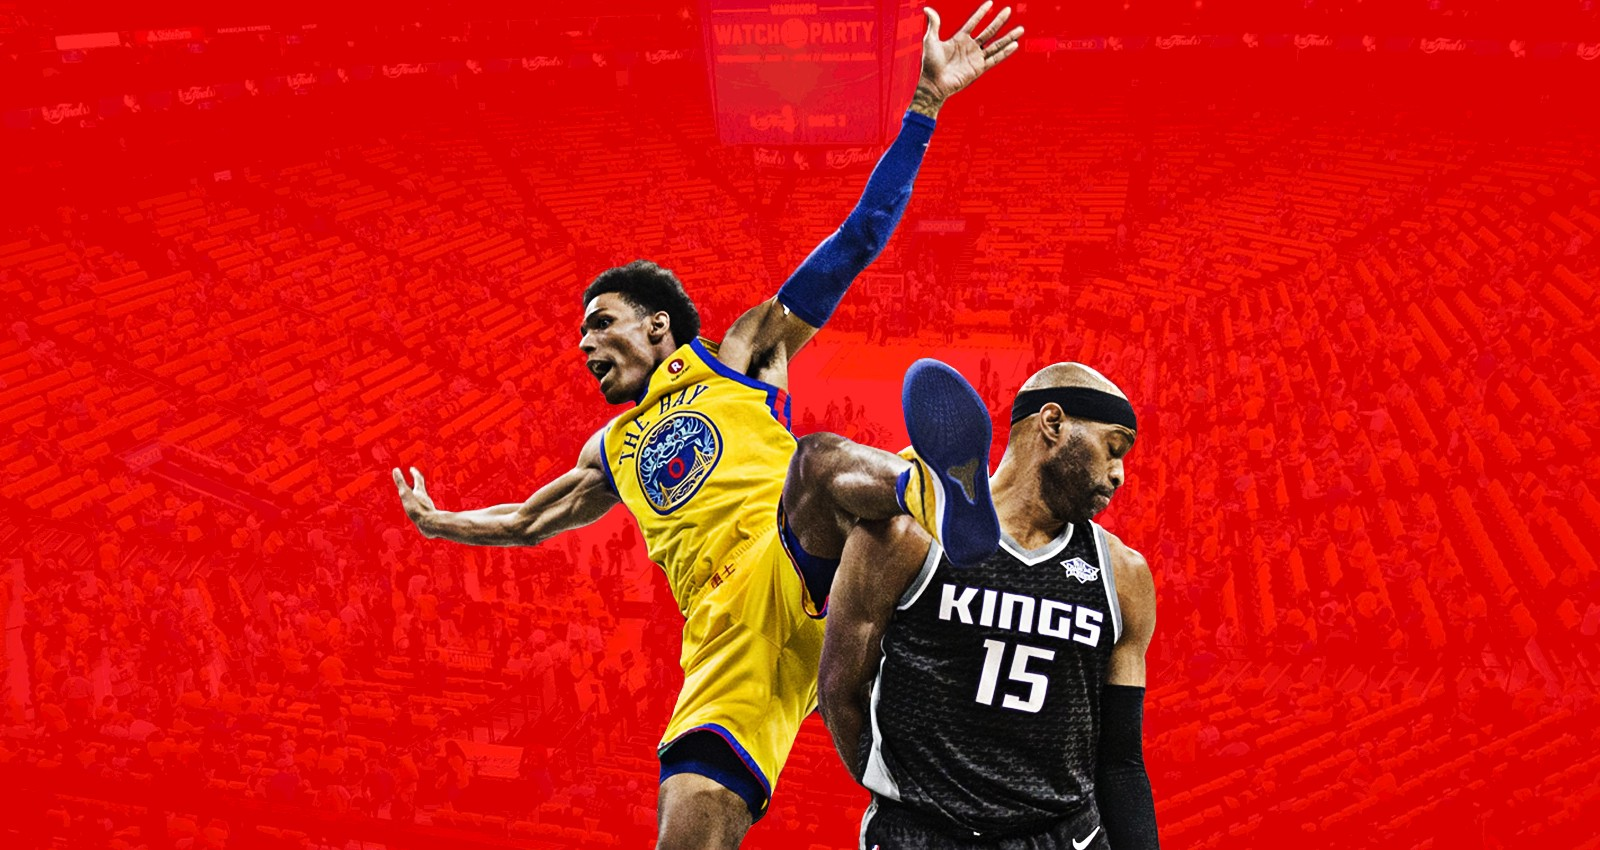 new style 764a7 be505 Did Vince Carter Mean to Injure Patrick McCaw? - Grandstand ...